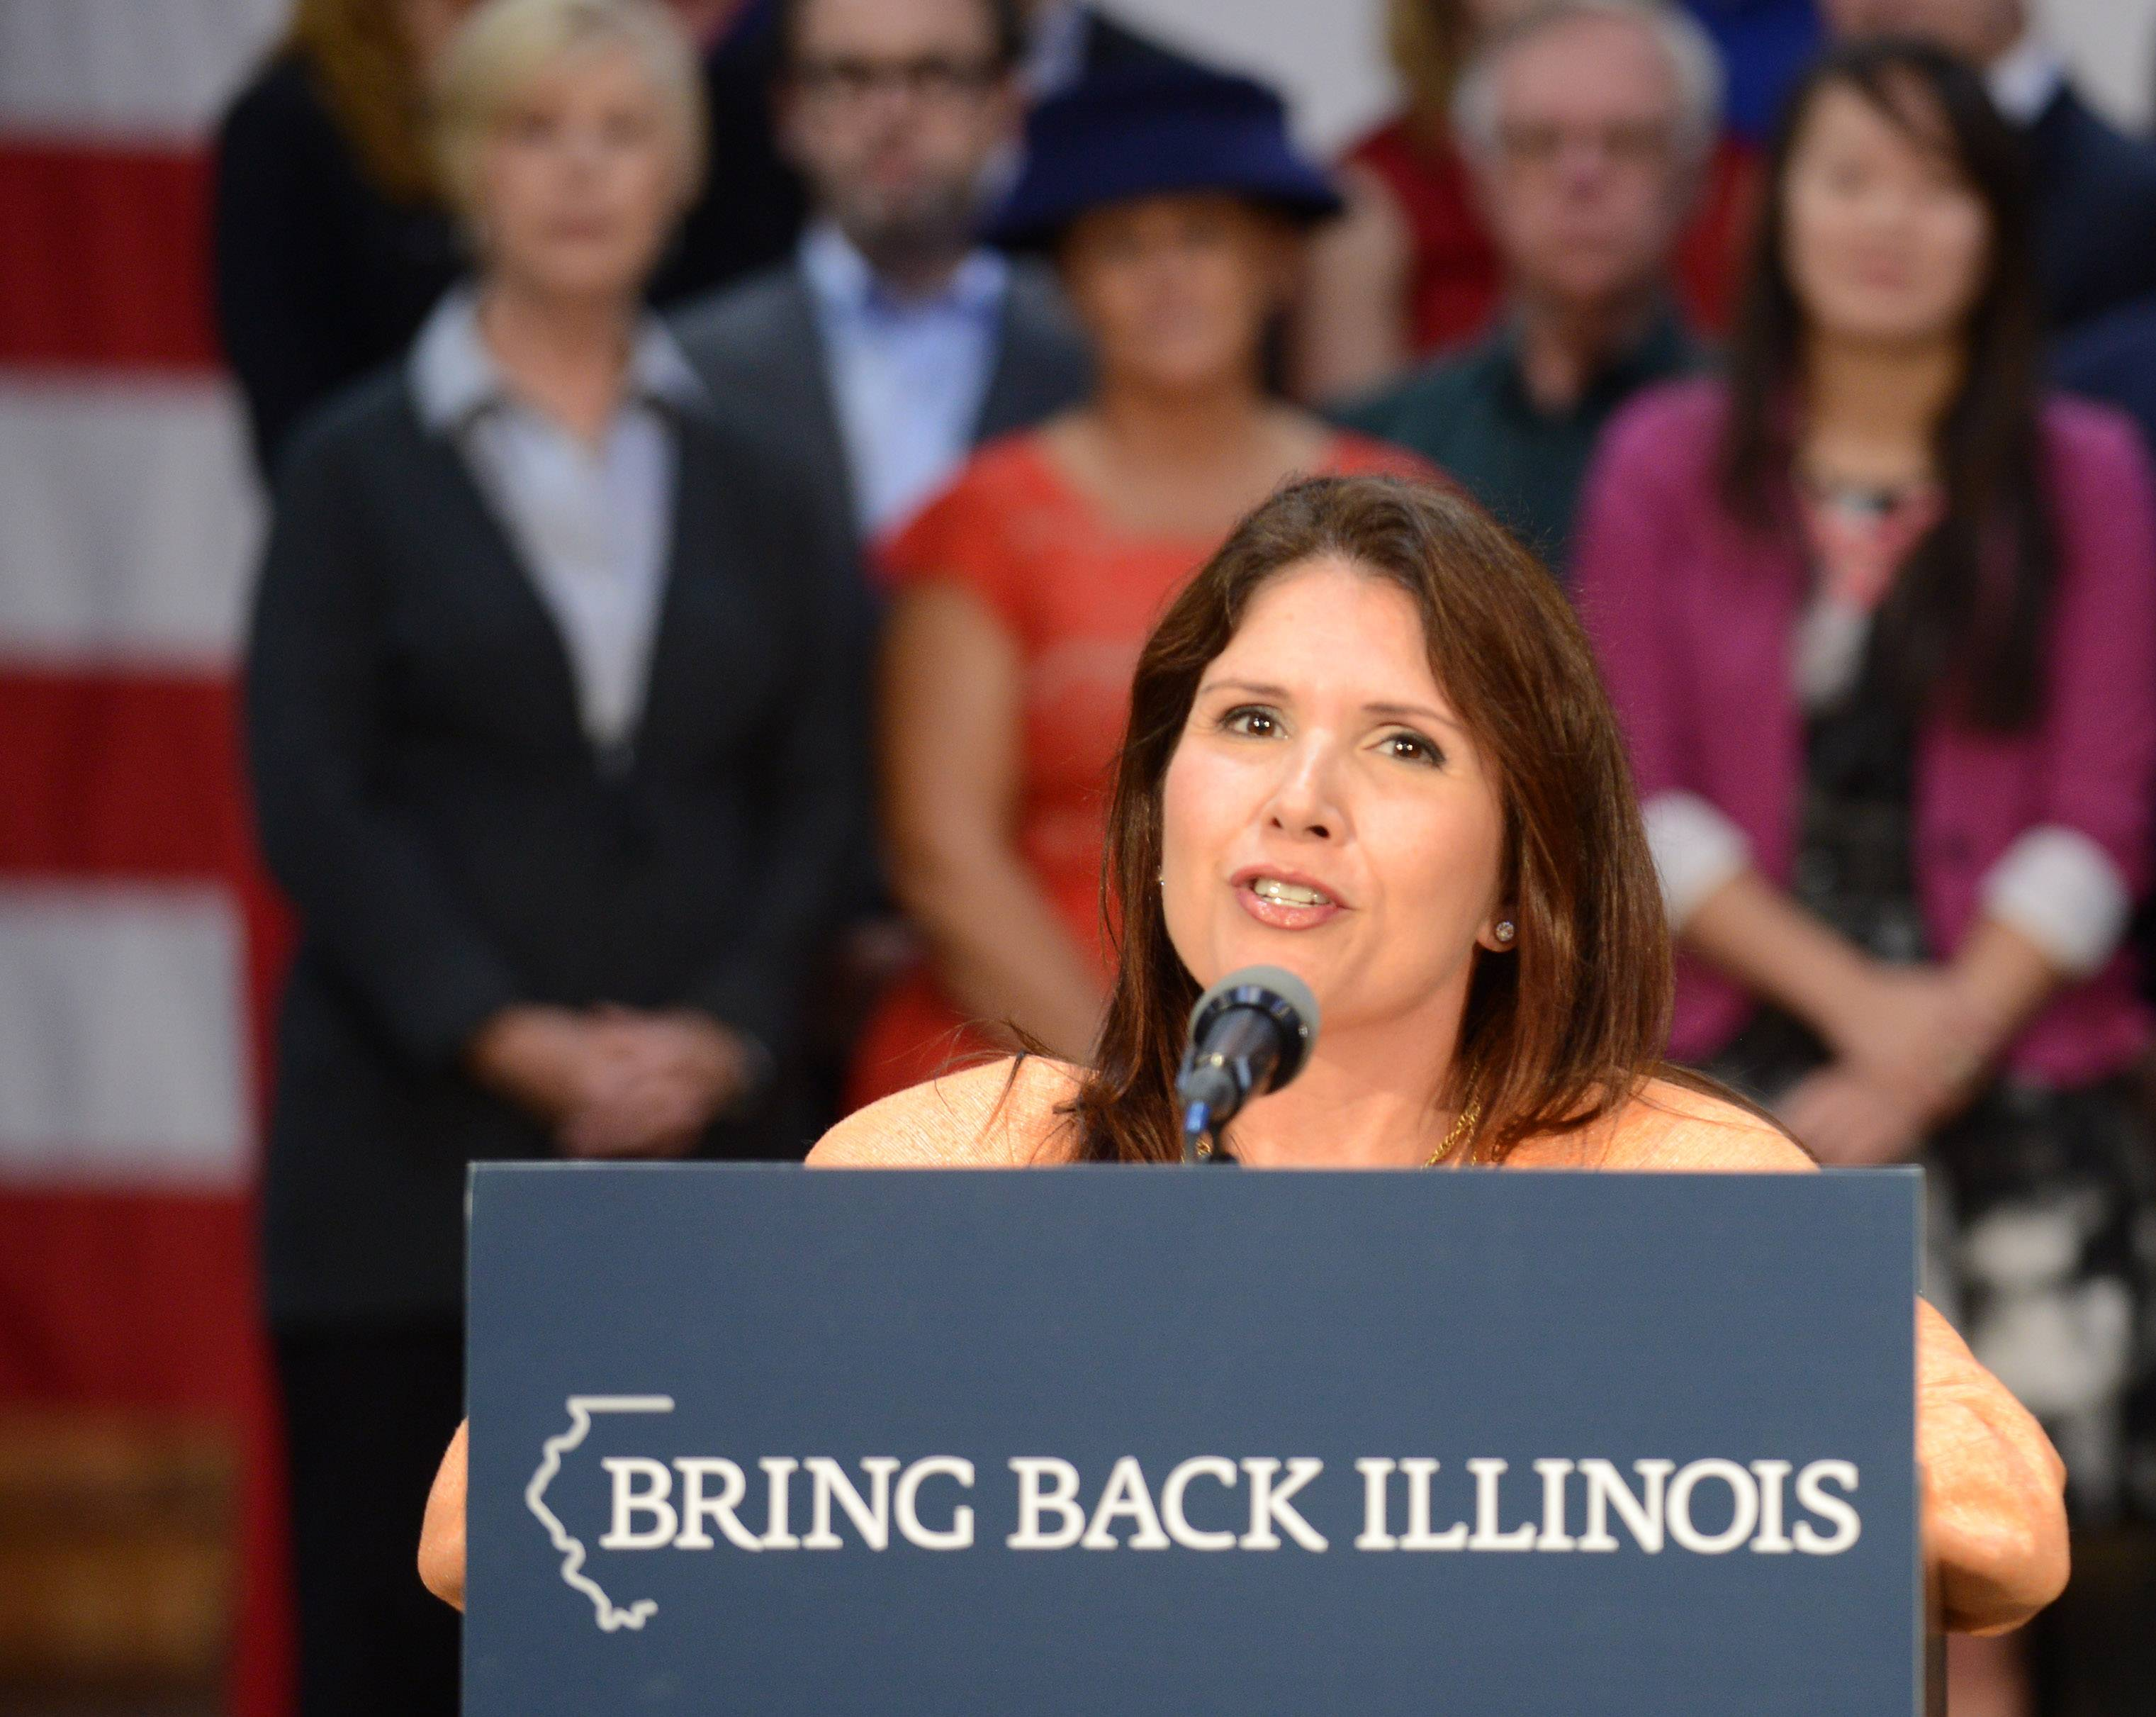 Evelyn Pacino Sanguinetti resigned from the Wheaton City Council earlier this week in advance of her swearing in as Illinois lieutenant governor.